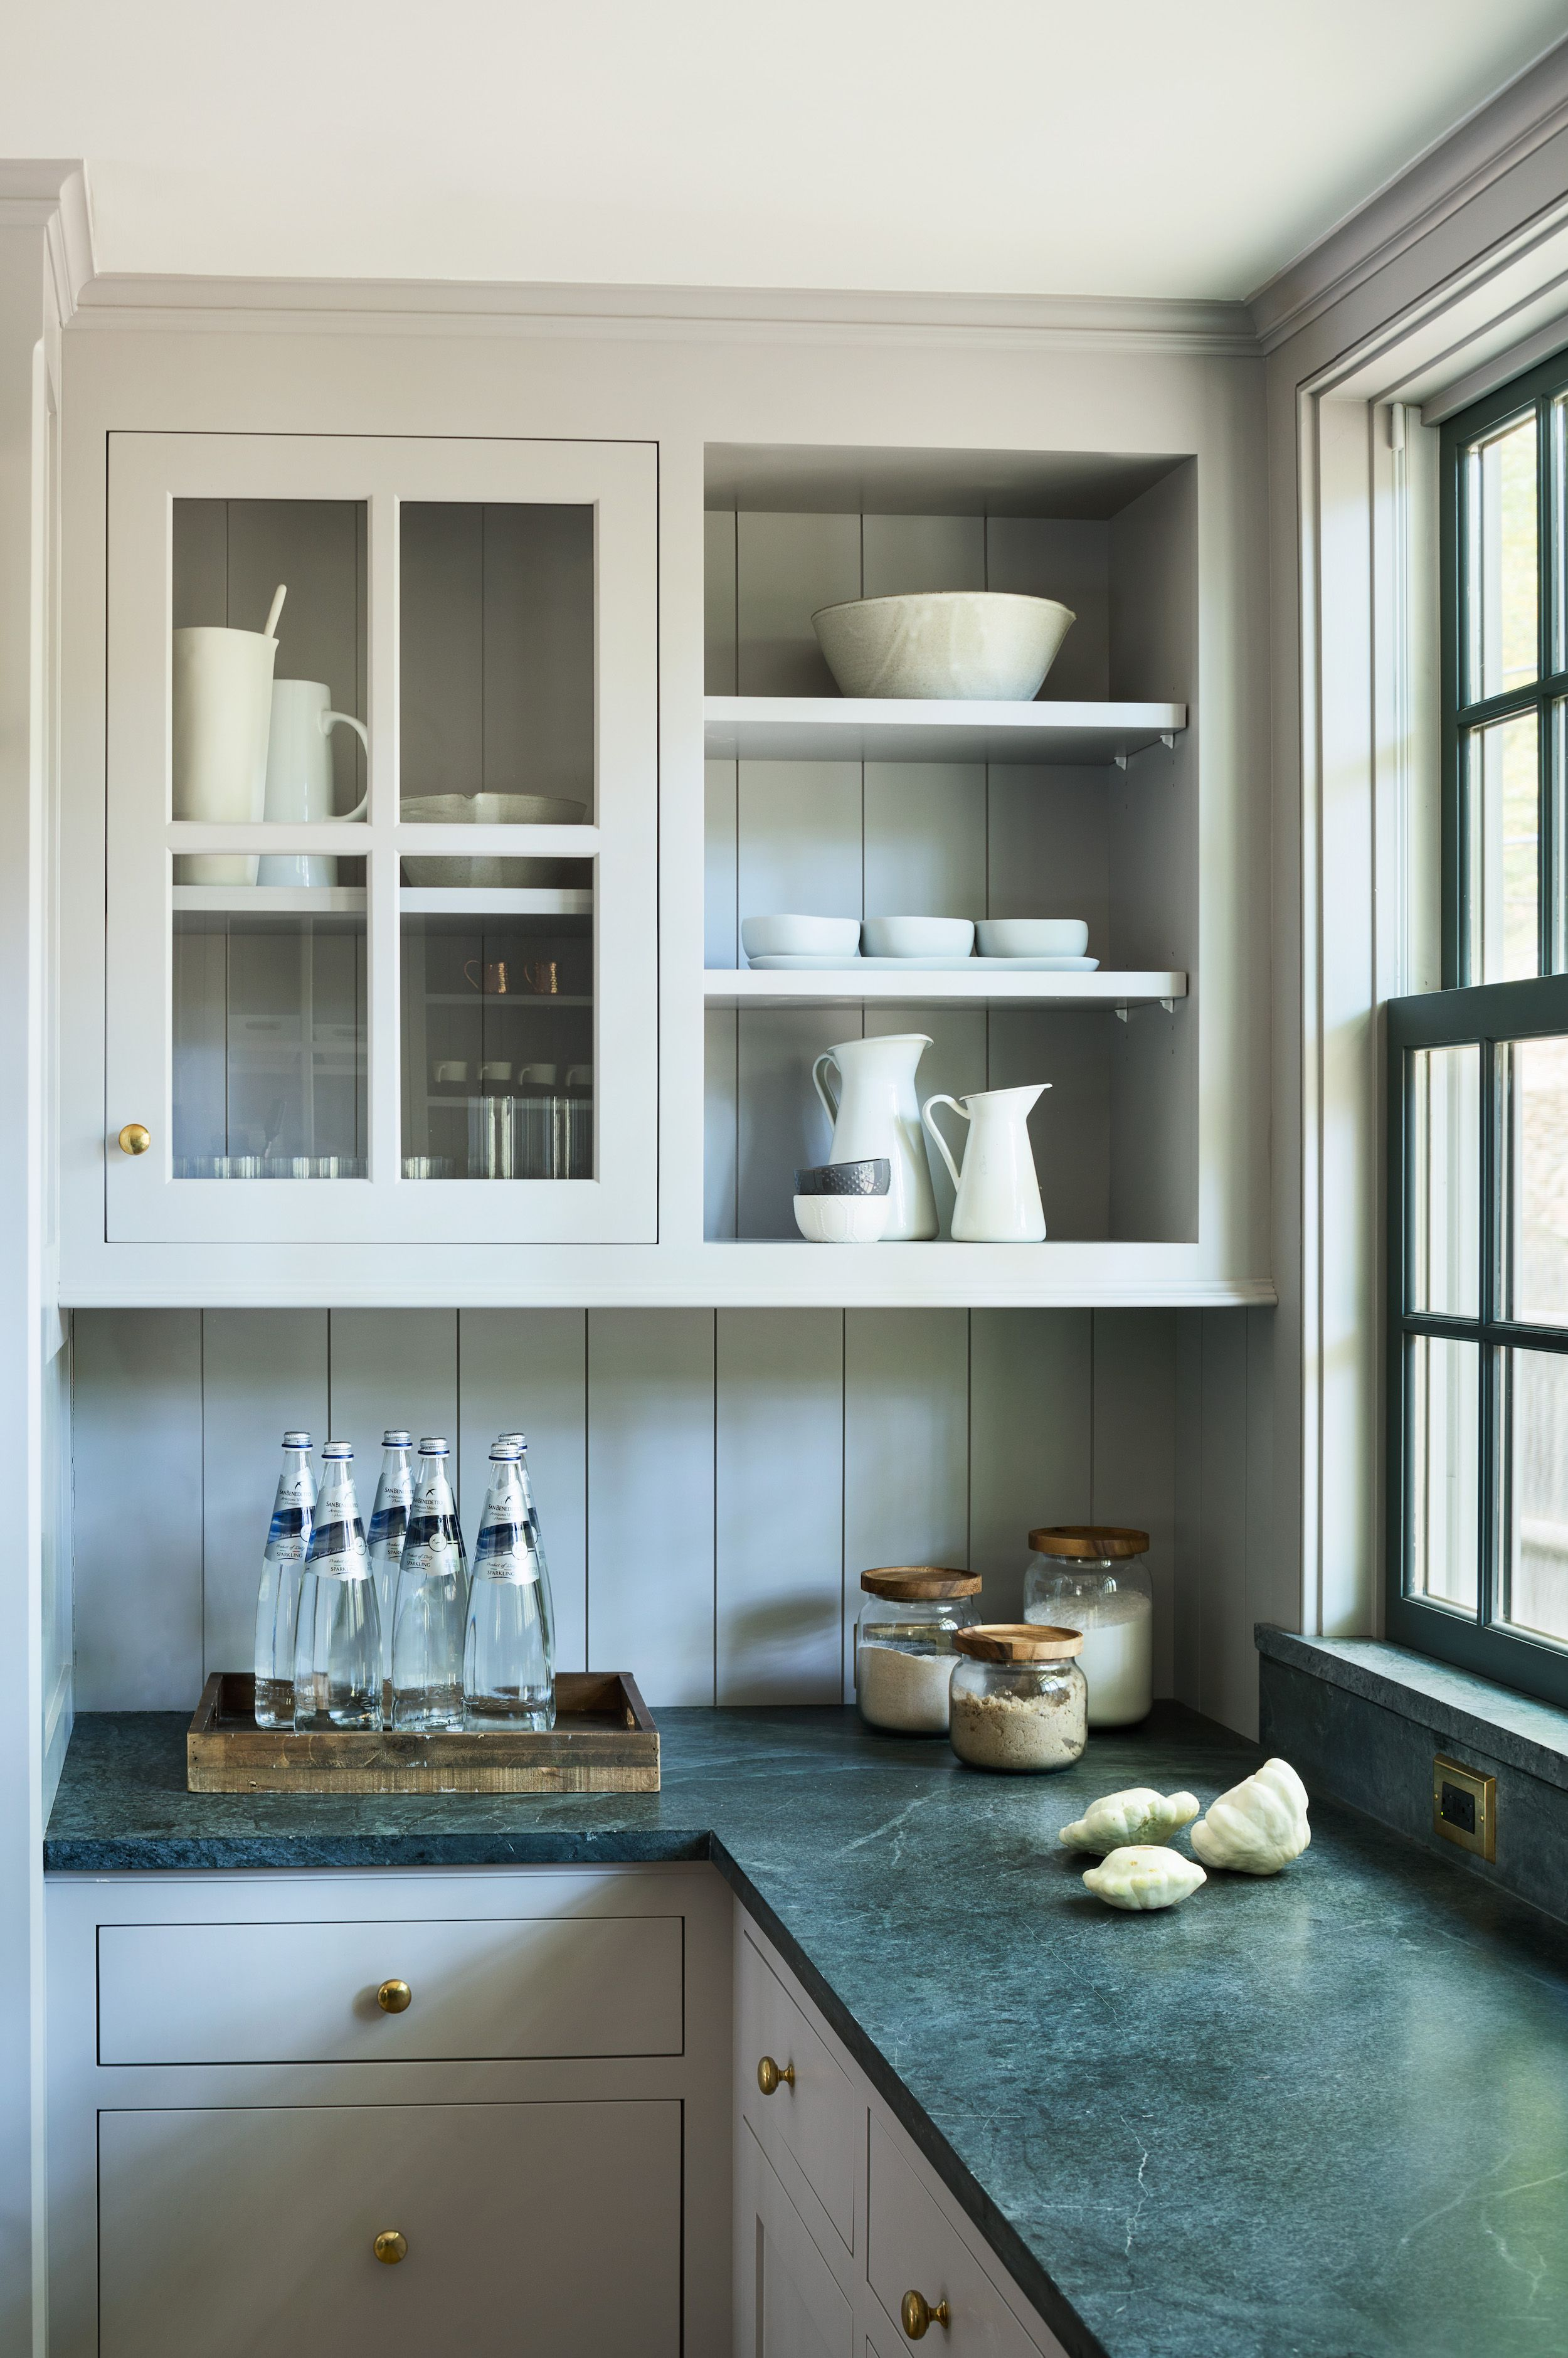 A Renovated Farmhouse In Bedford Ny With Scandinavian Influences Remodelista Farmhouse Style Kitchen Cabinets Soapstone Kitchen Kitchen Cabinet Styles